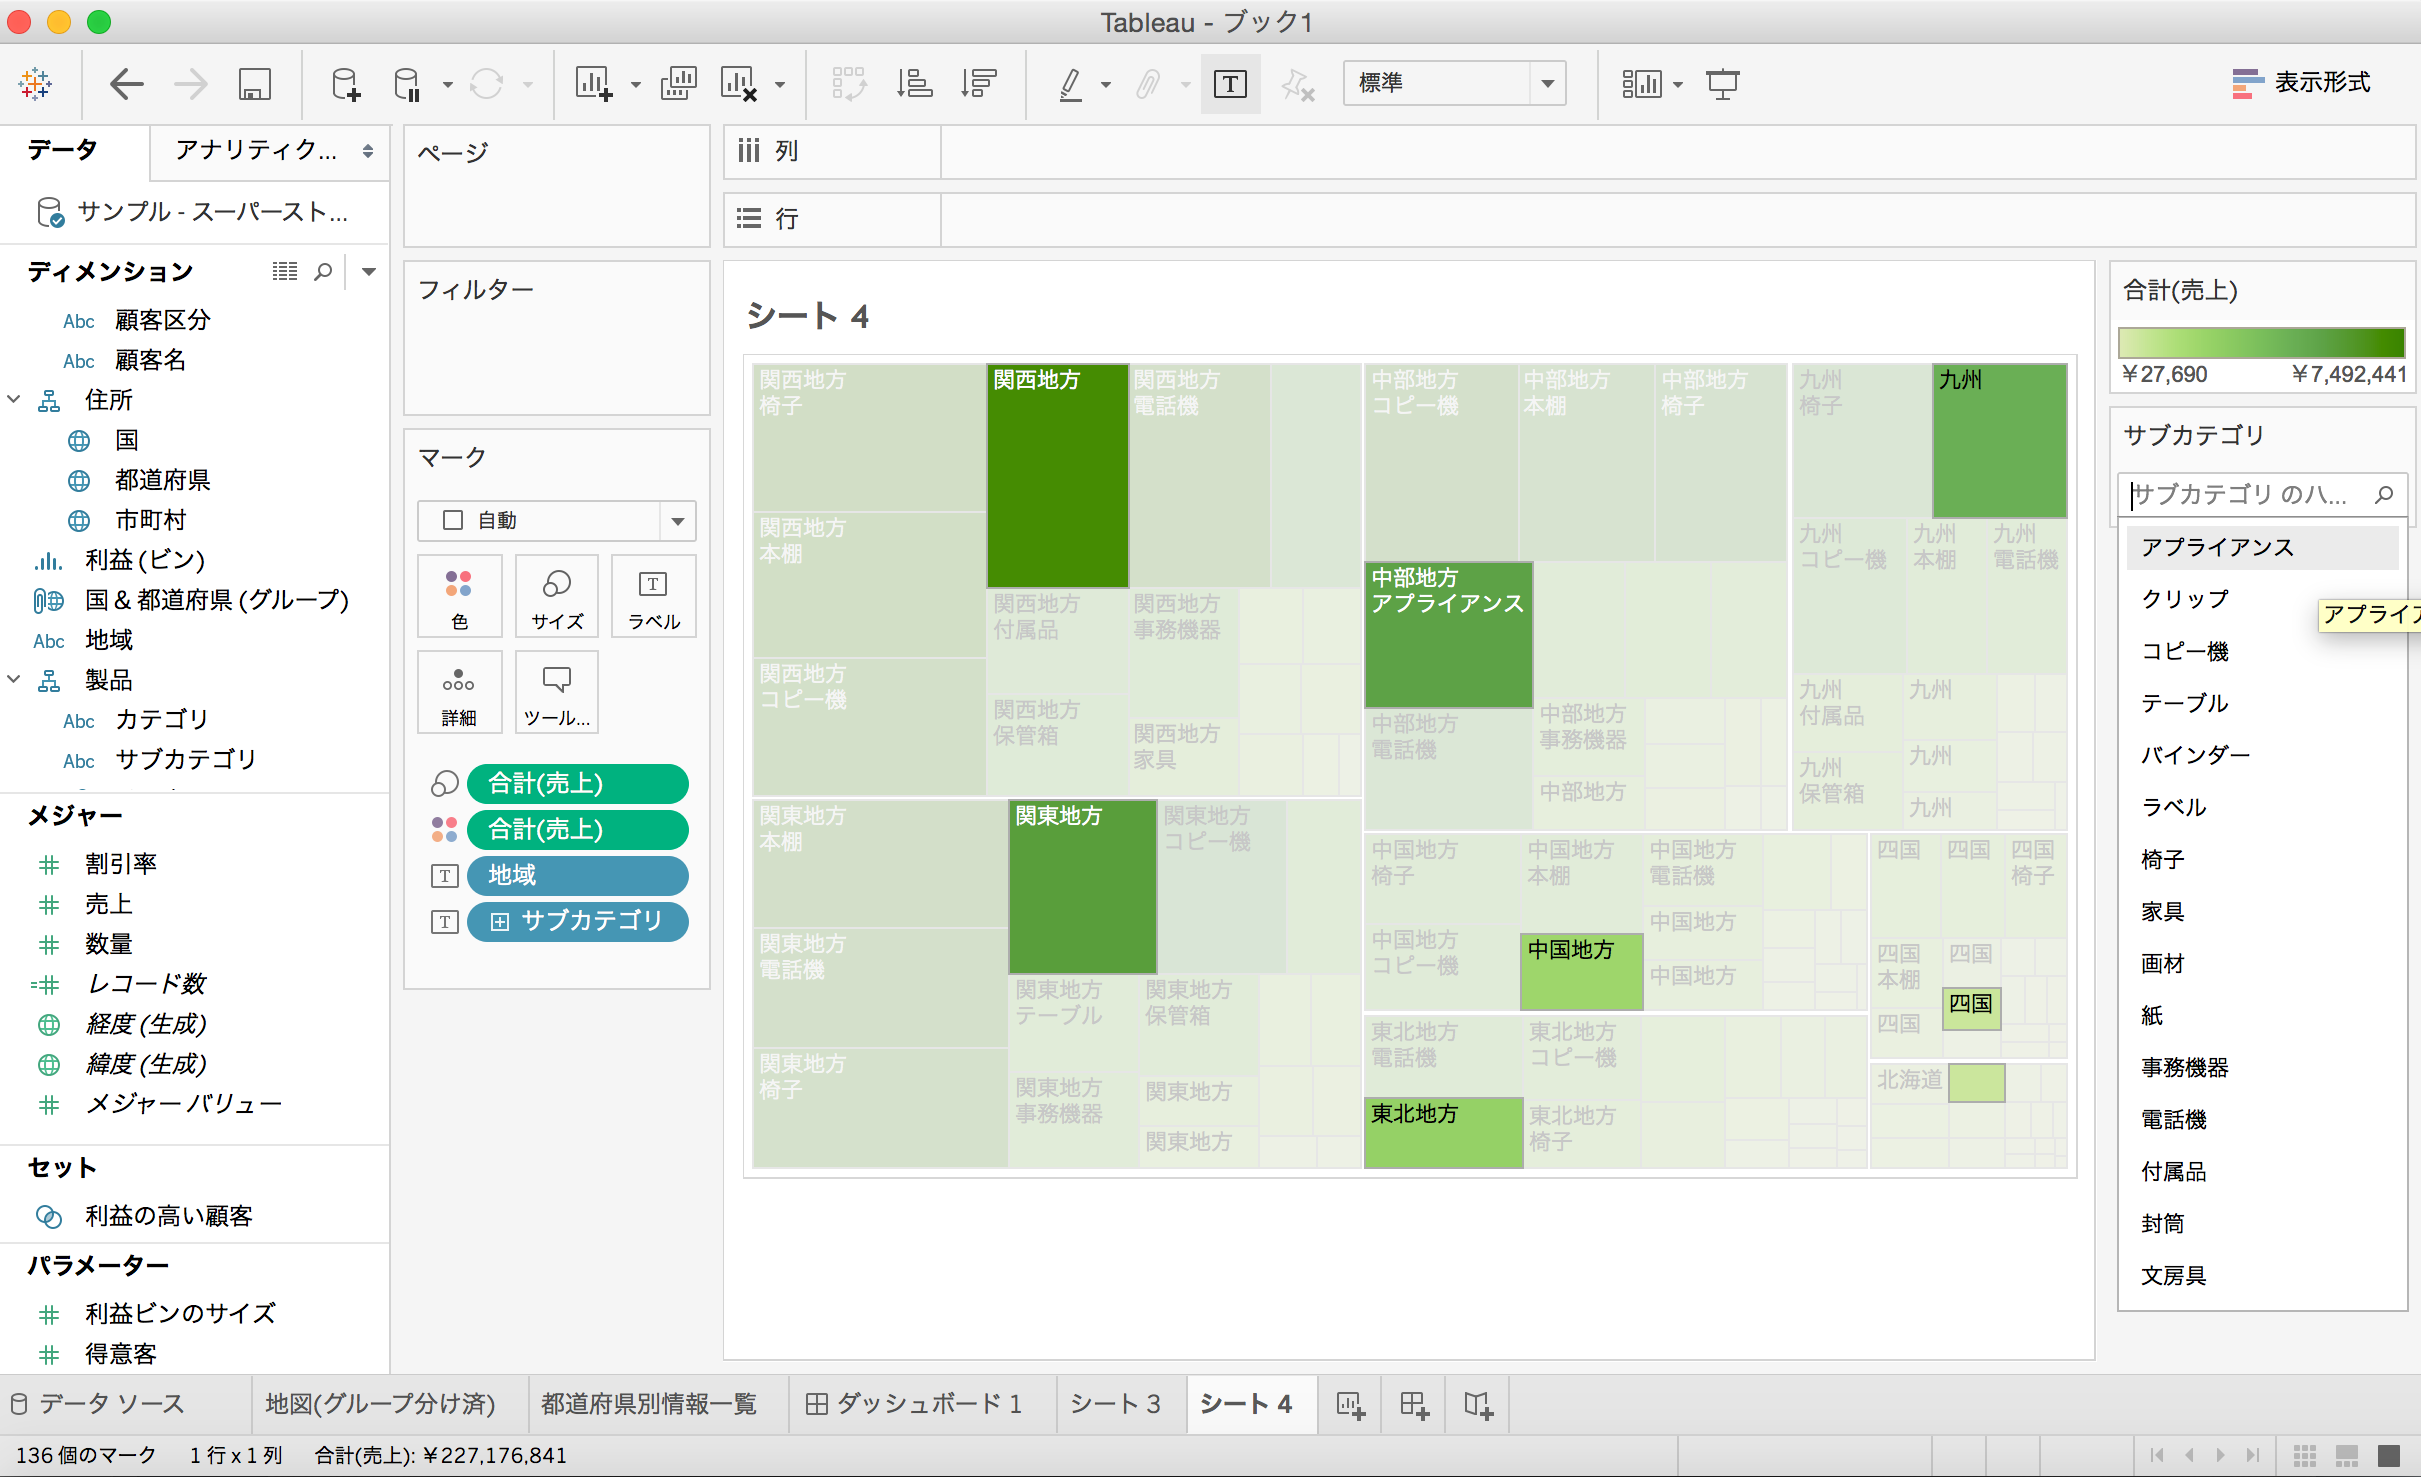 tableau10-desktop-highlighter_07